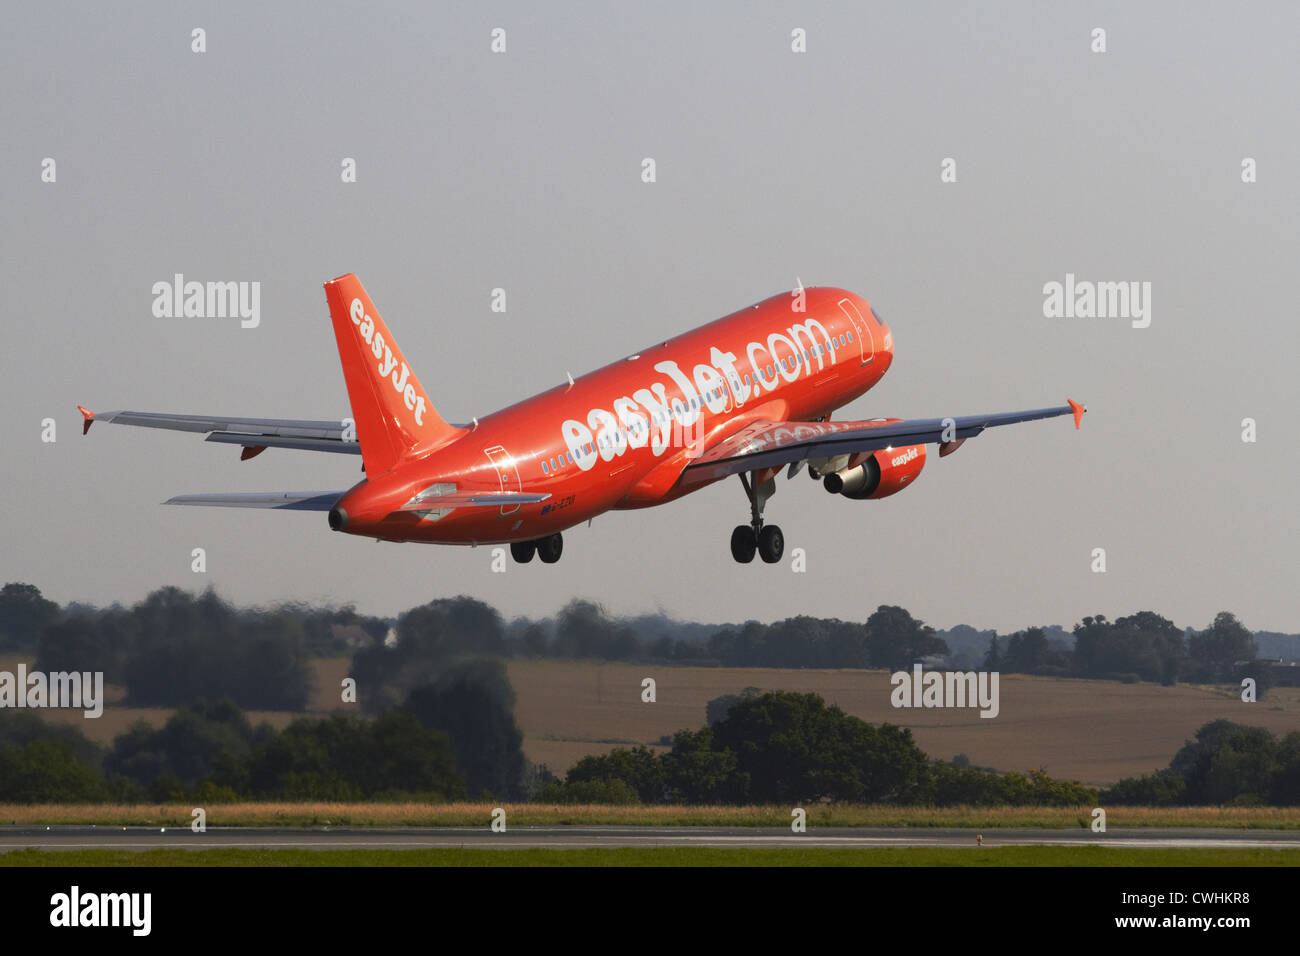 Easy Jet Airbus A320-214 climbing after leaving runway - Stock Image